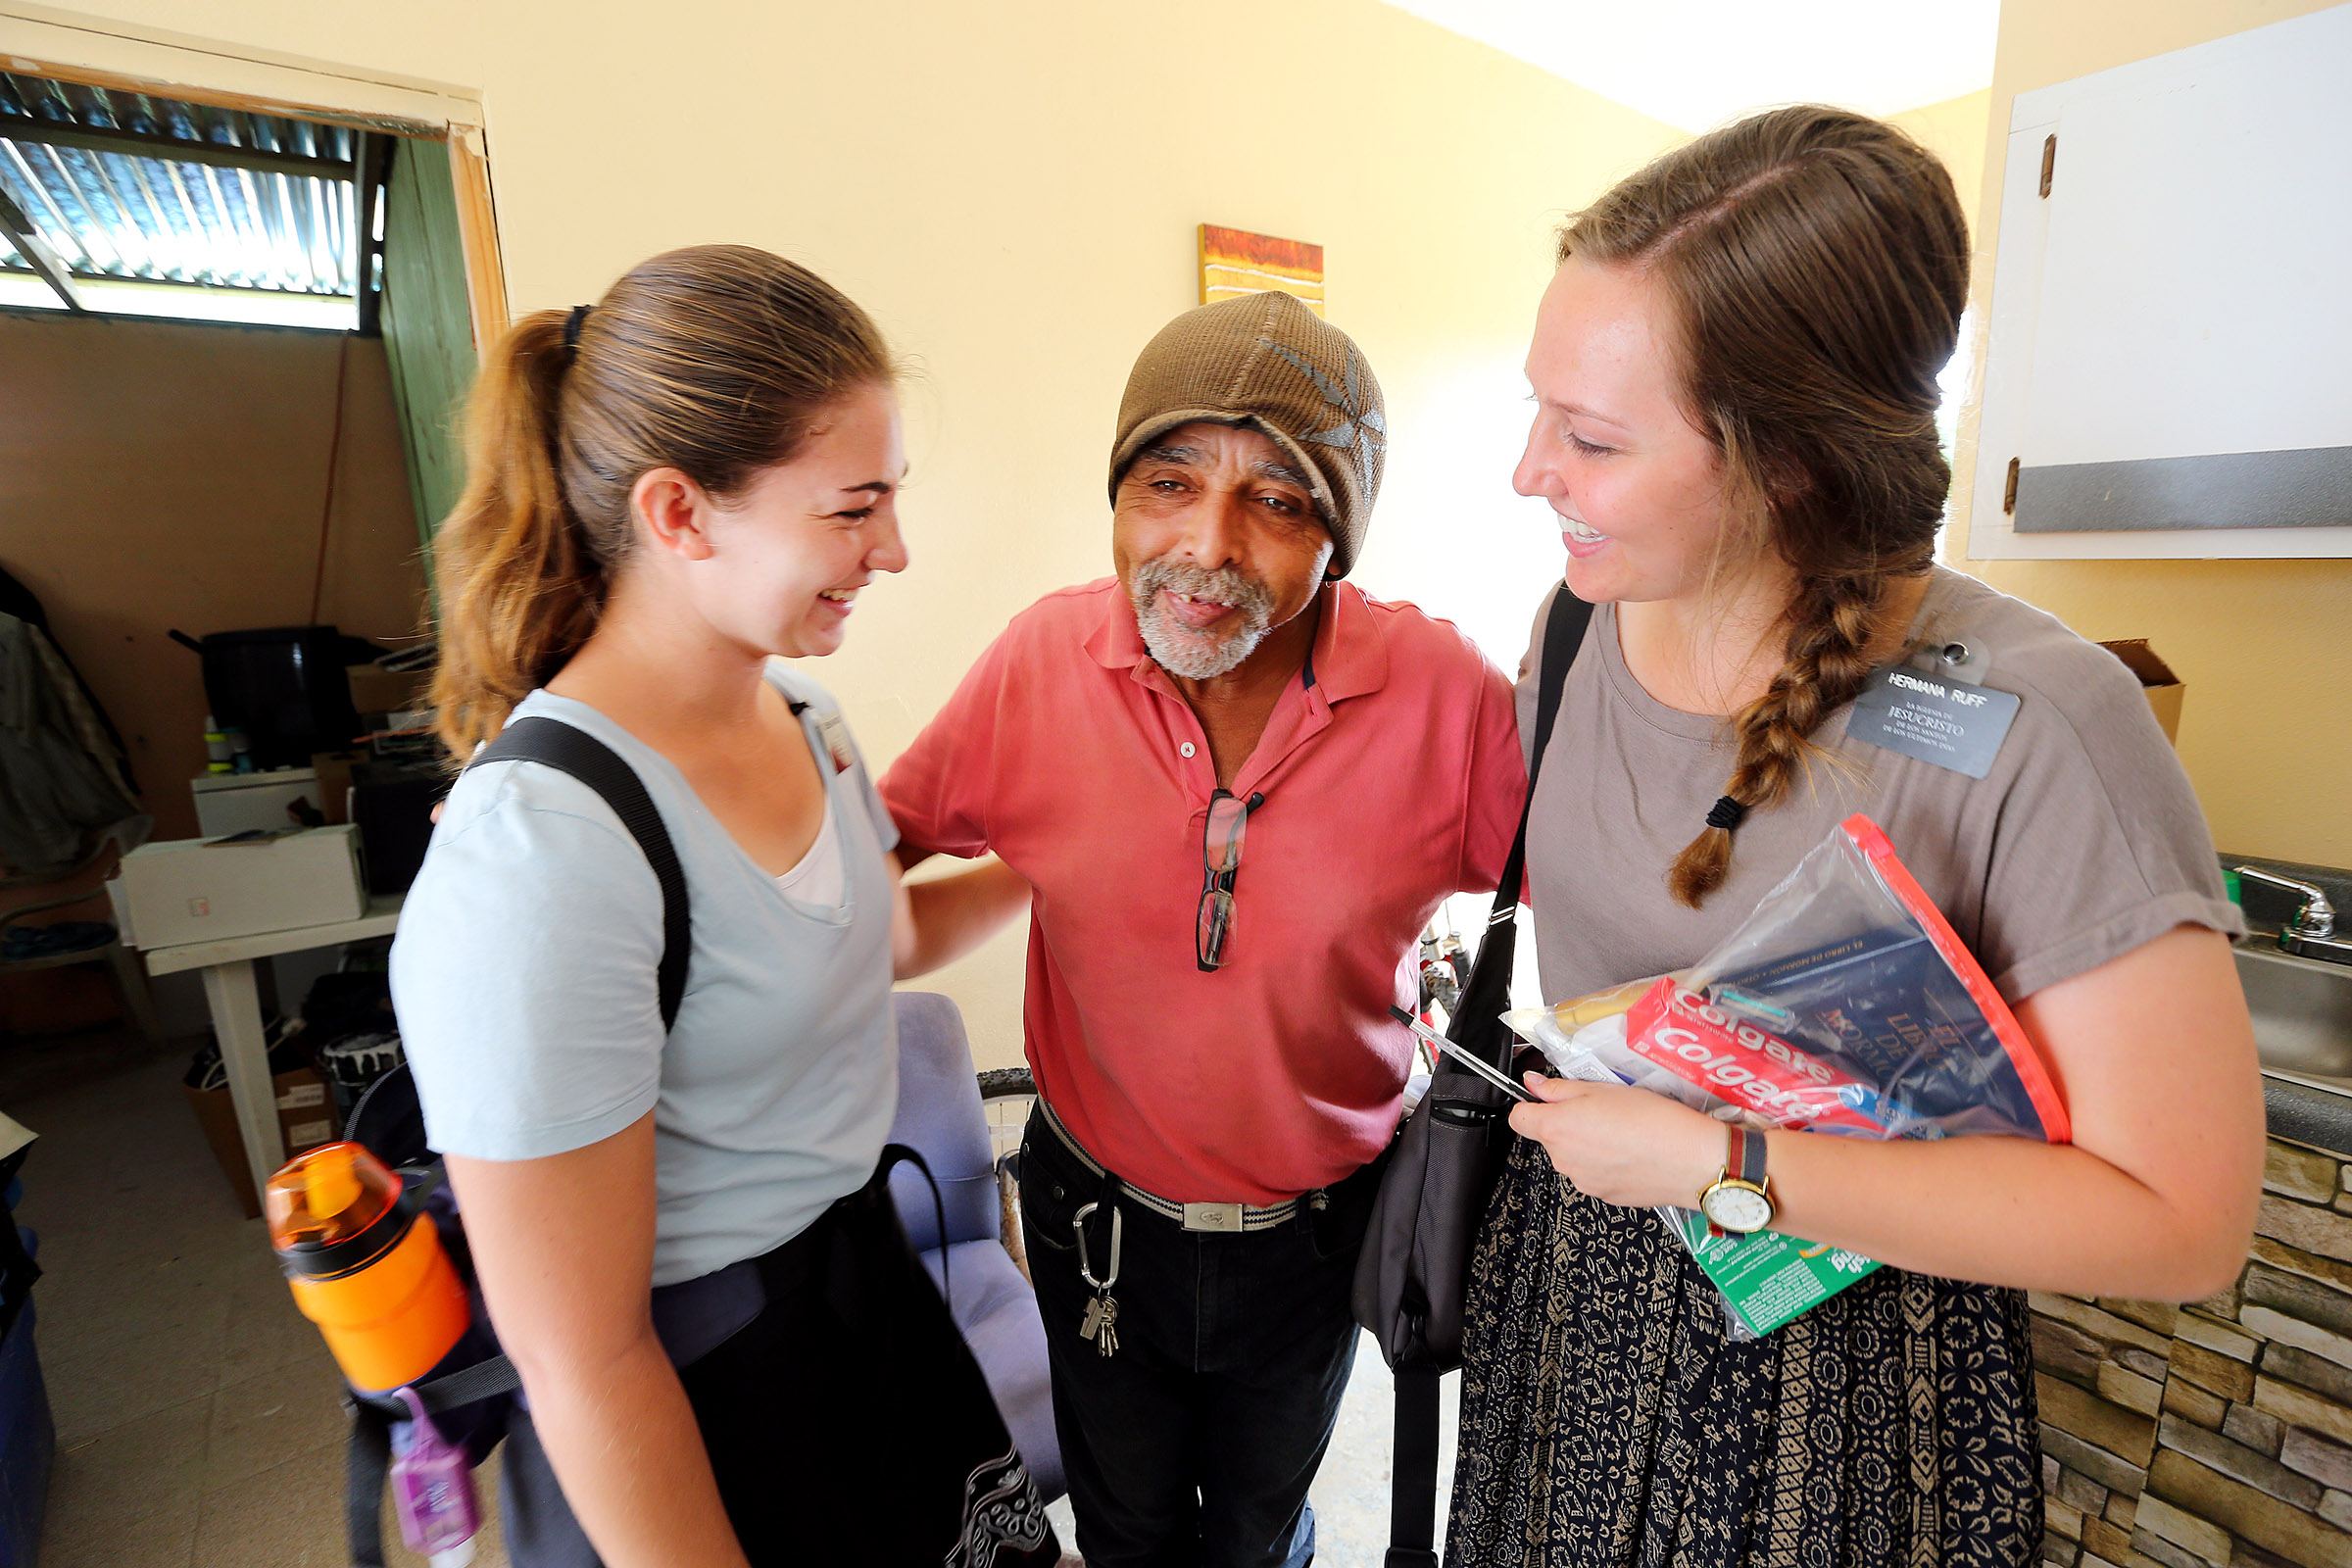 Sister's Erin Bianucci from Layton Utah, and Mary Ruff from Midvale Utah, receive a grateful hug from Eloy Rodriguez after they gave him a box of cleaning items and other necessities in Puerto Rico on Saturday, Feb. 17, 2018.